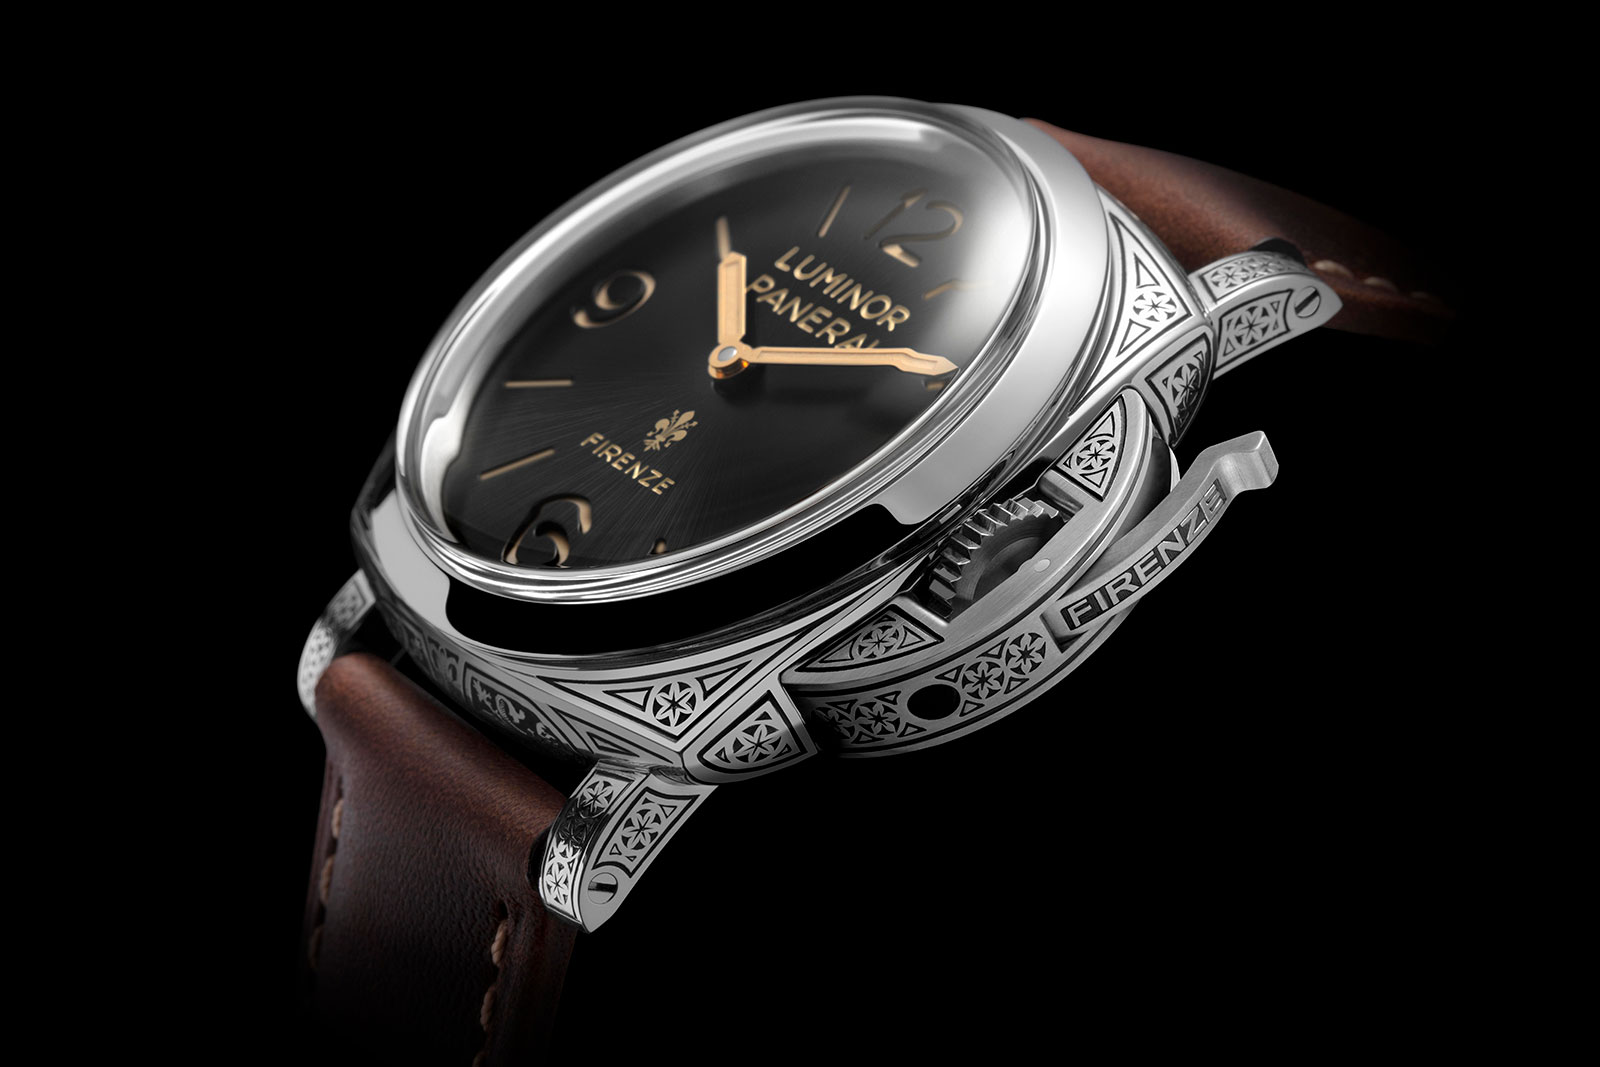 Panerai Luminor Firenze PAM972 1